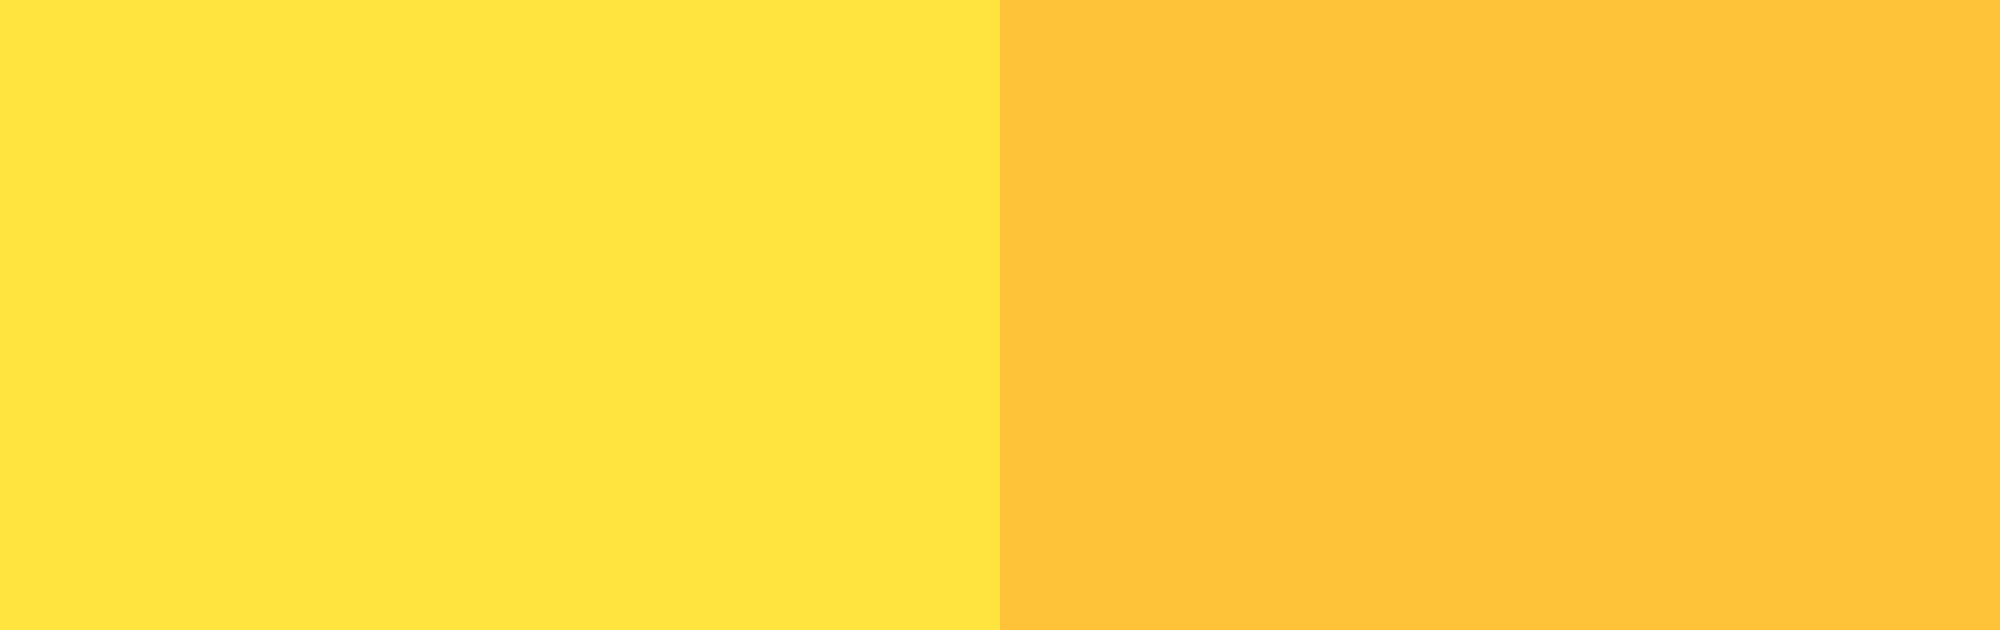 Two low contrast colors of the same color family.